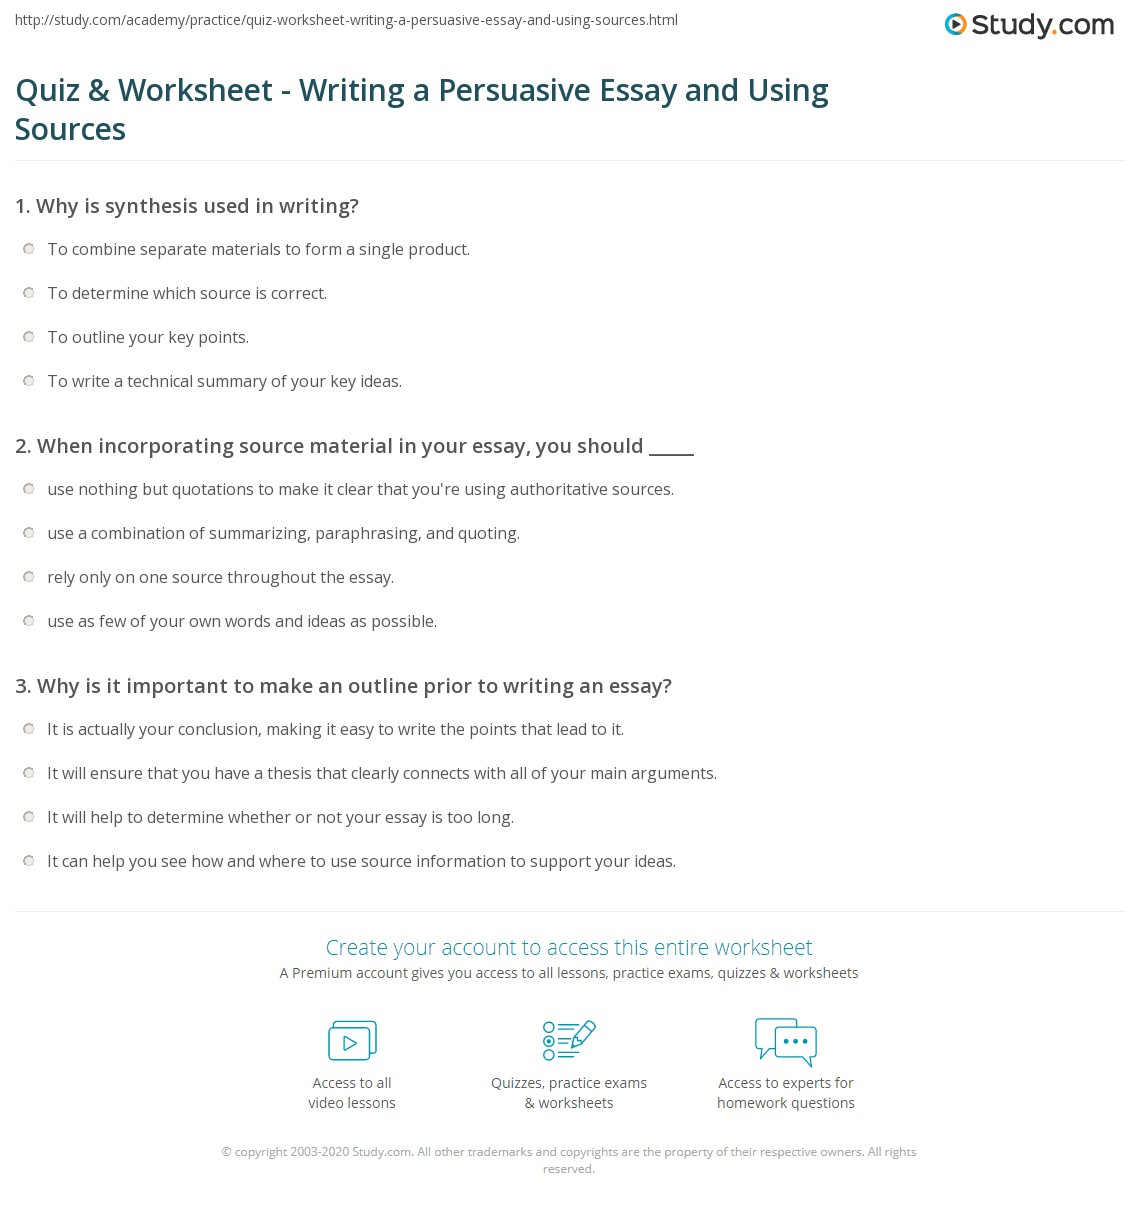 persuation essays How to write persuasively and how to write a persuasive essay - learn what to include and how to convince your audience to agree with your point of view.